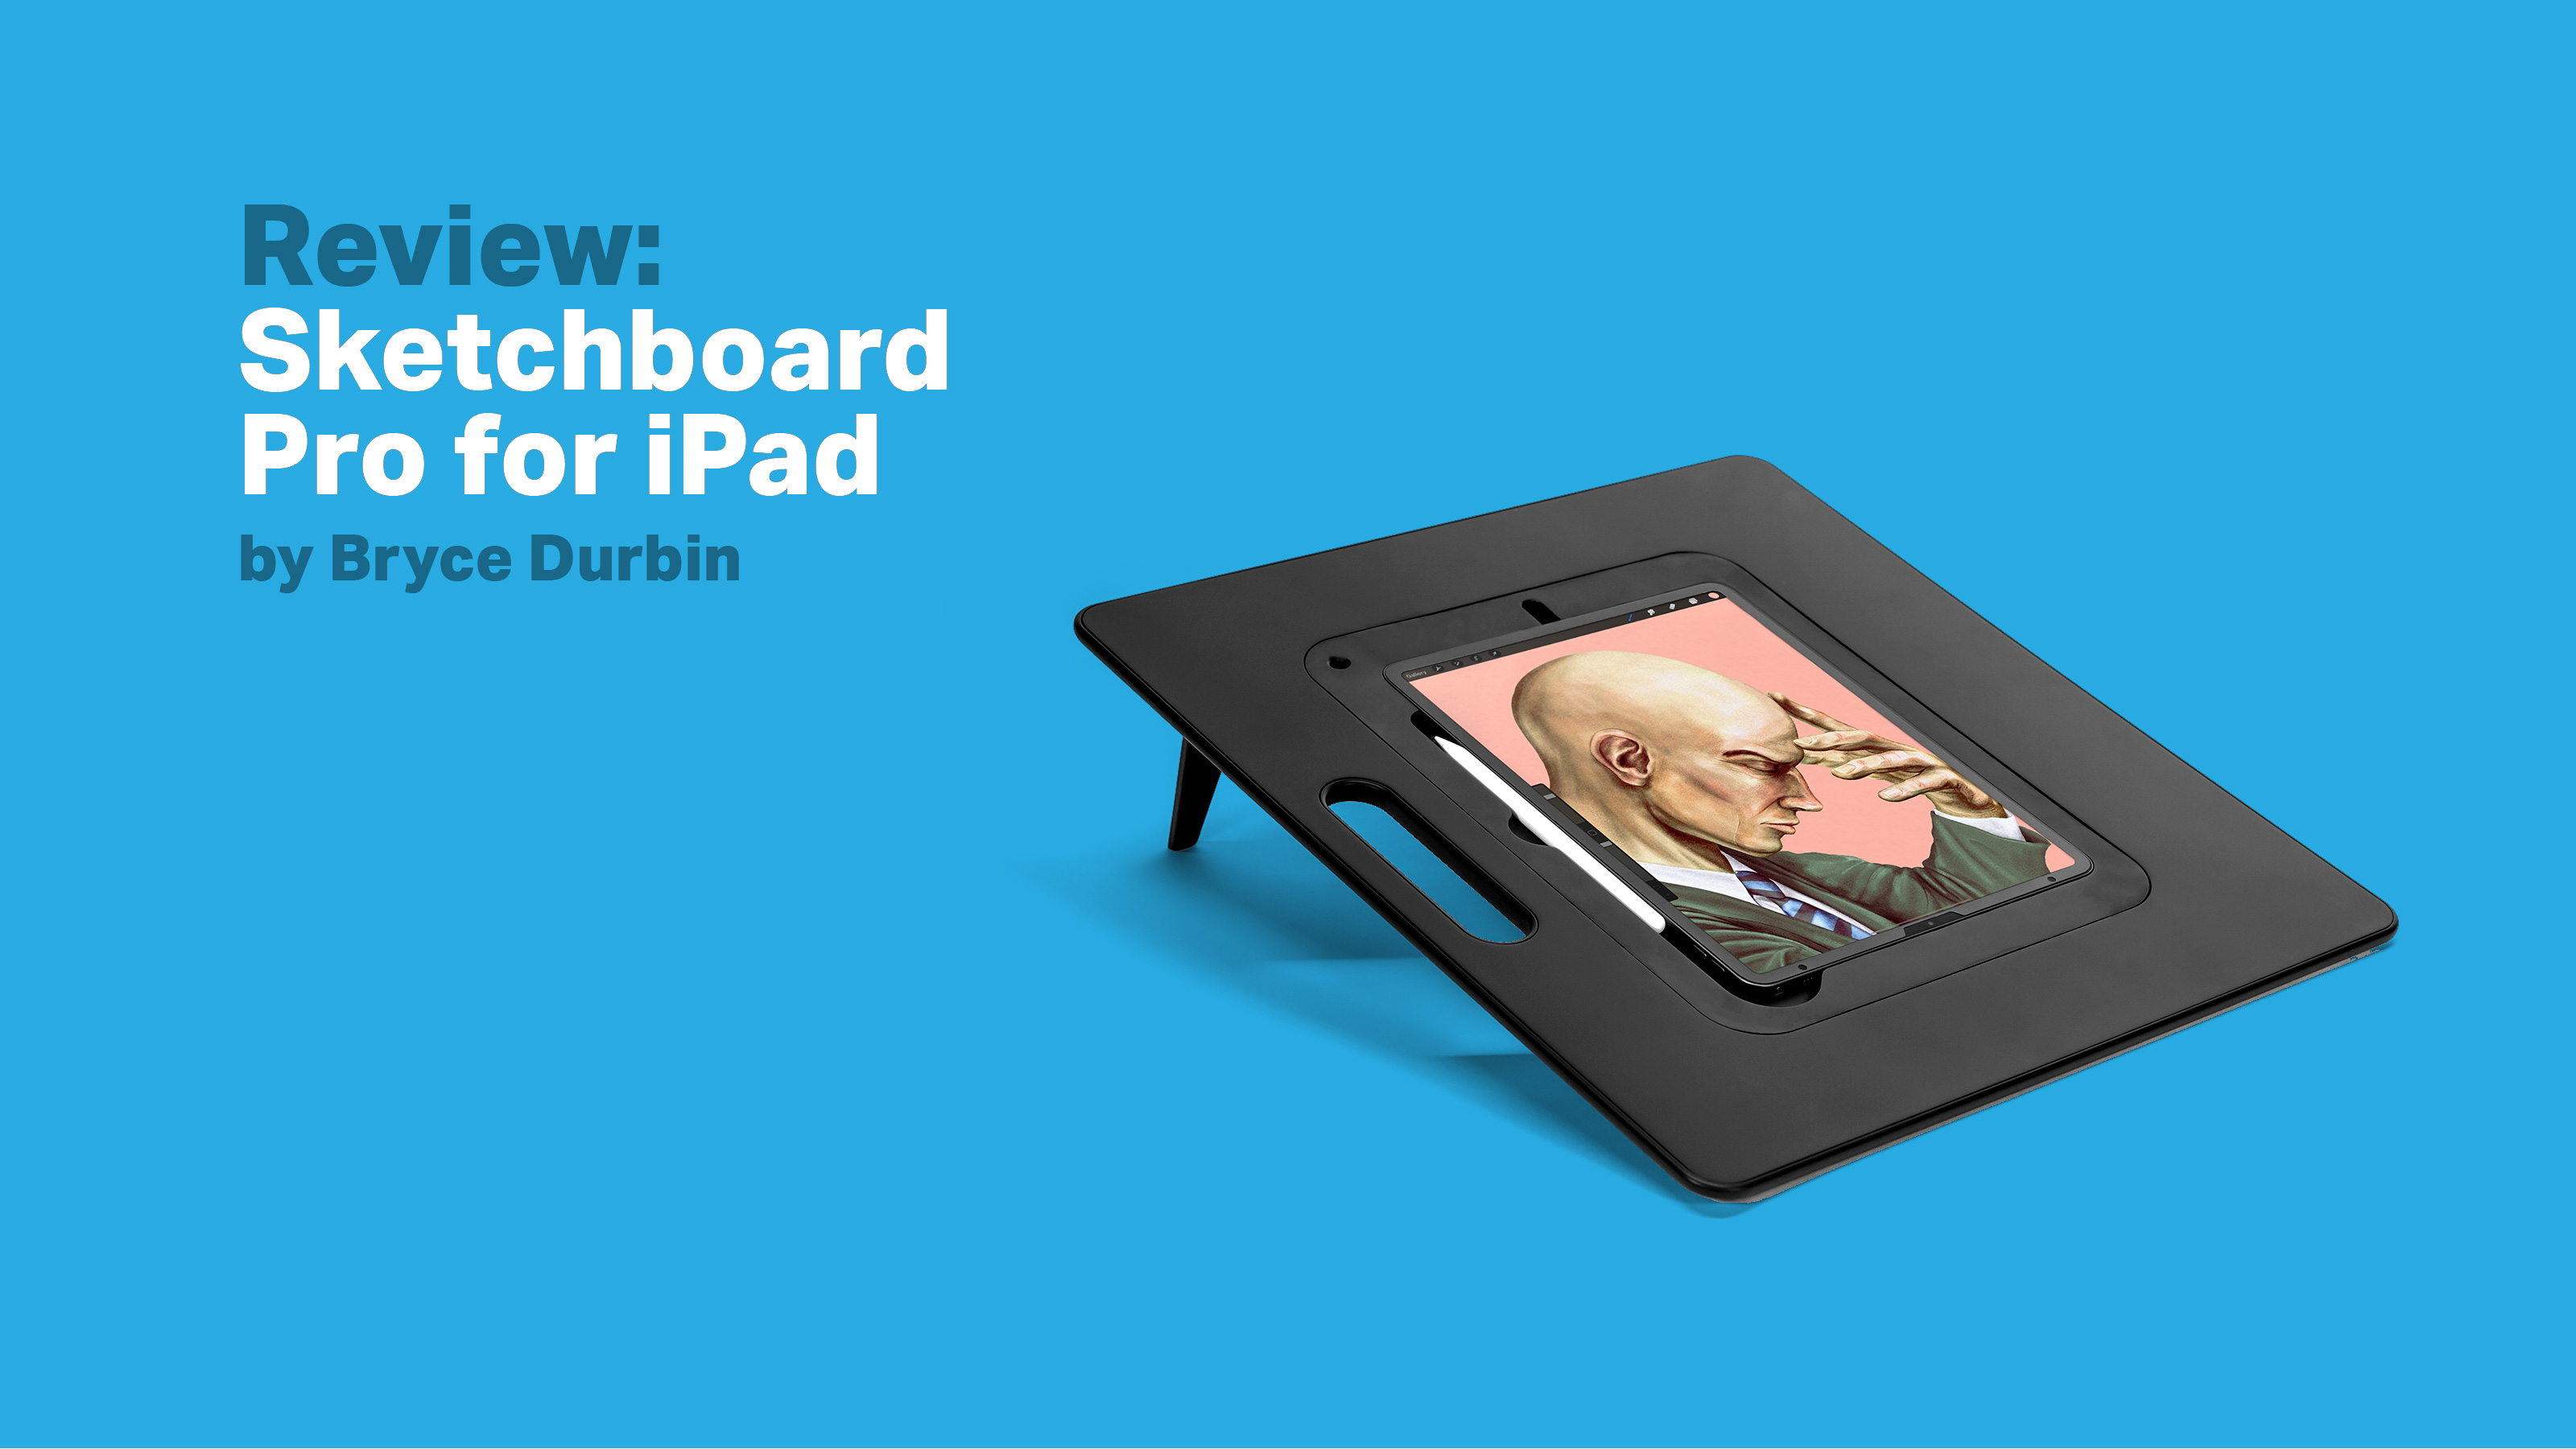 Review: Sketchboard Pro for iPad